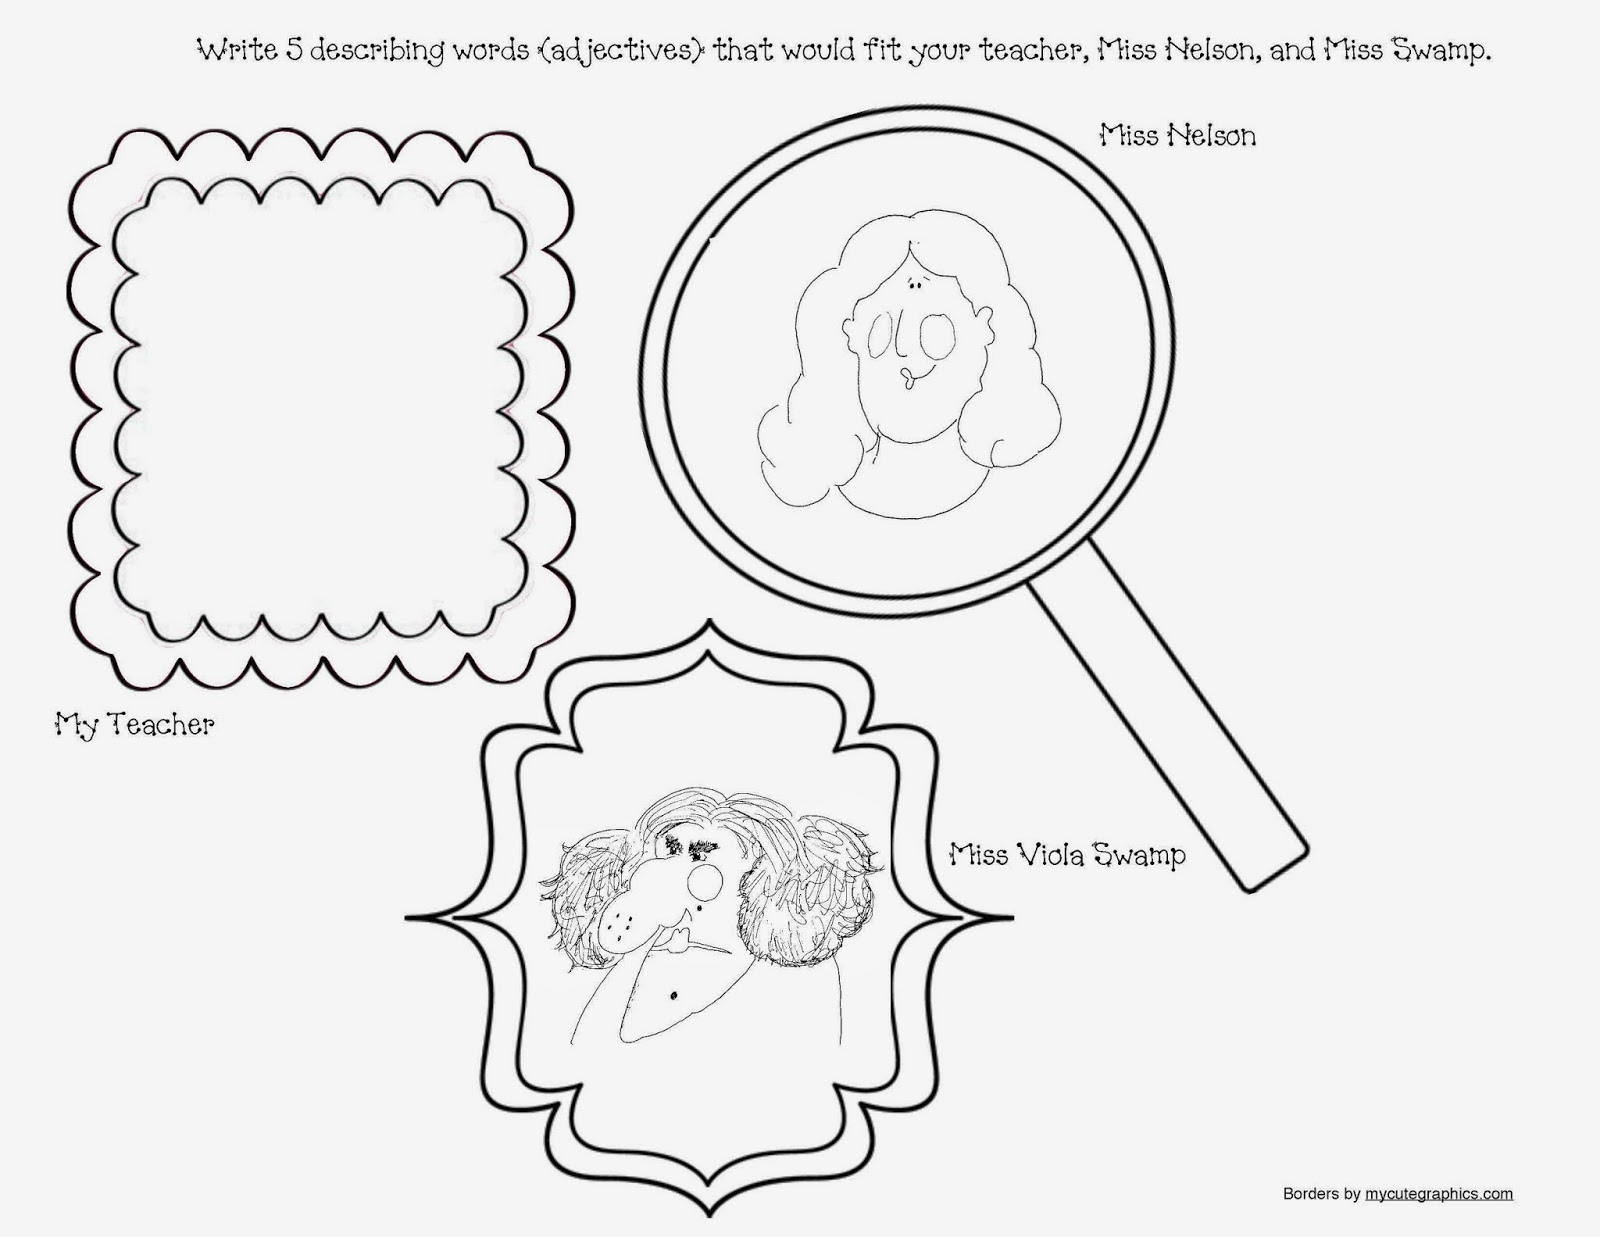 Worksheets Miss Nelson Is Missing Worksheets classroom freebies miss nelson is missing packet lots of adjective activities a great opportunity to discuss synonyms and antonyms because swamp are certainly oppositesqu